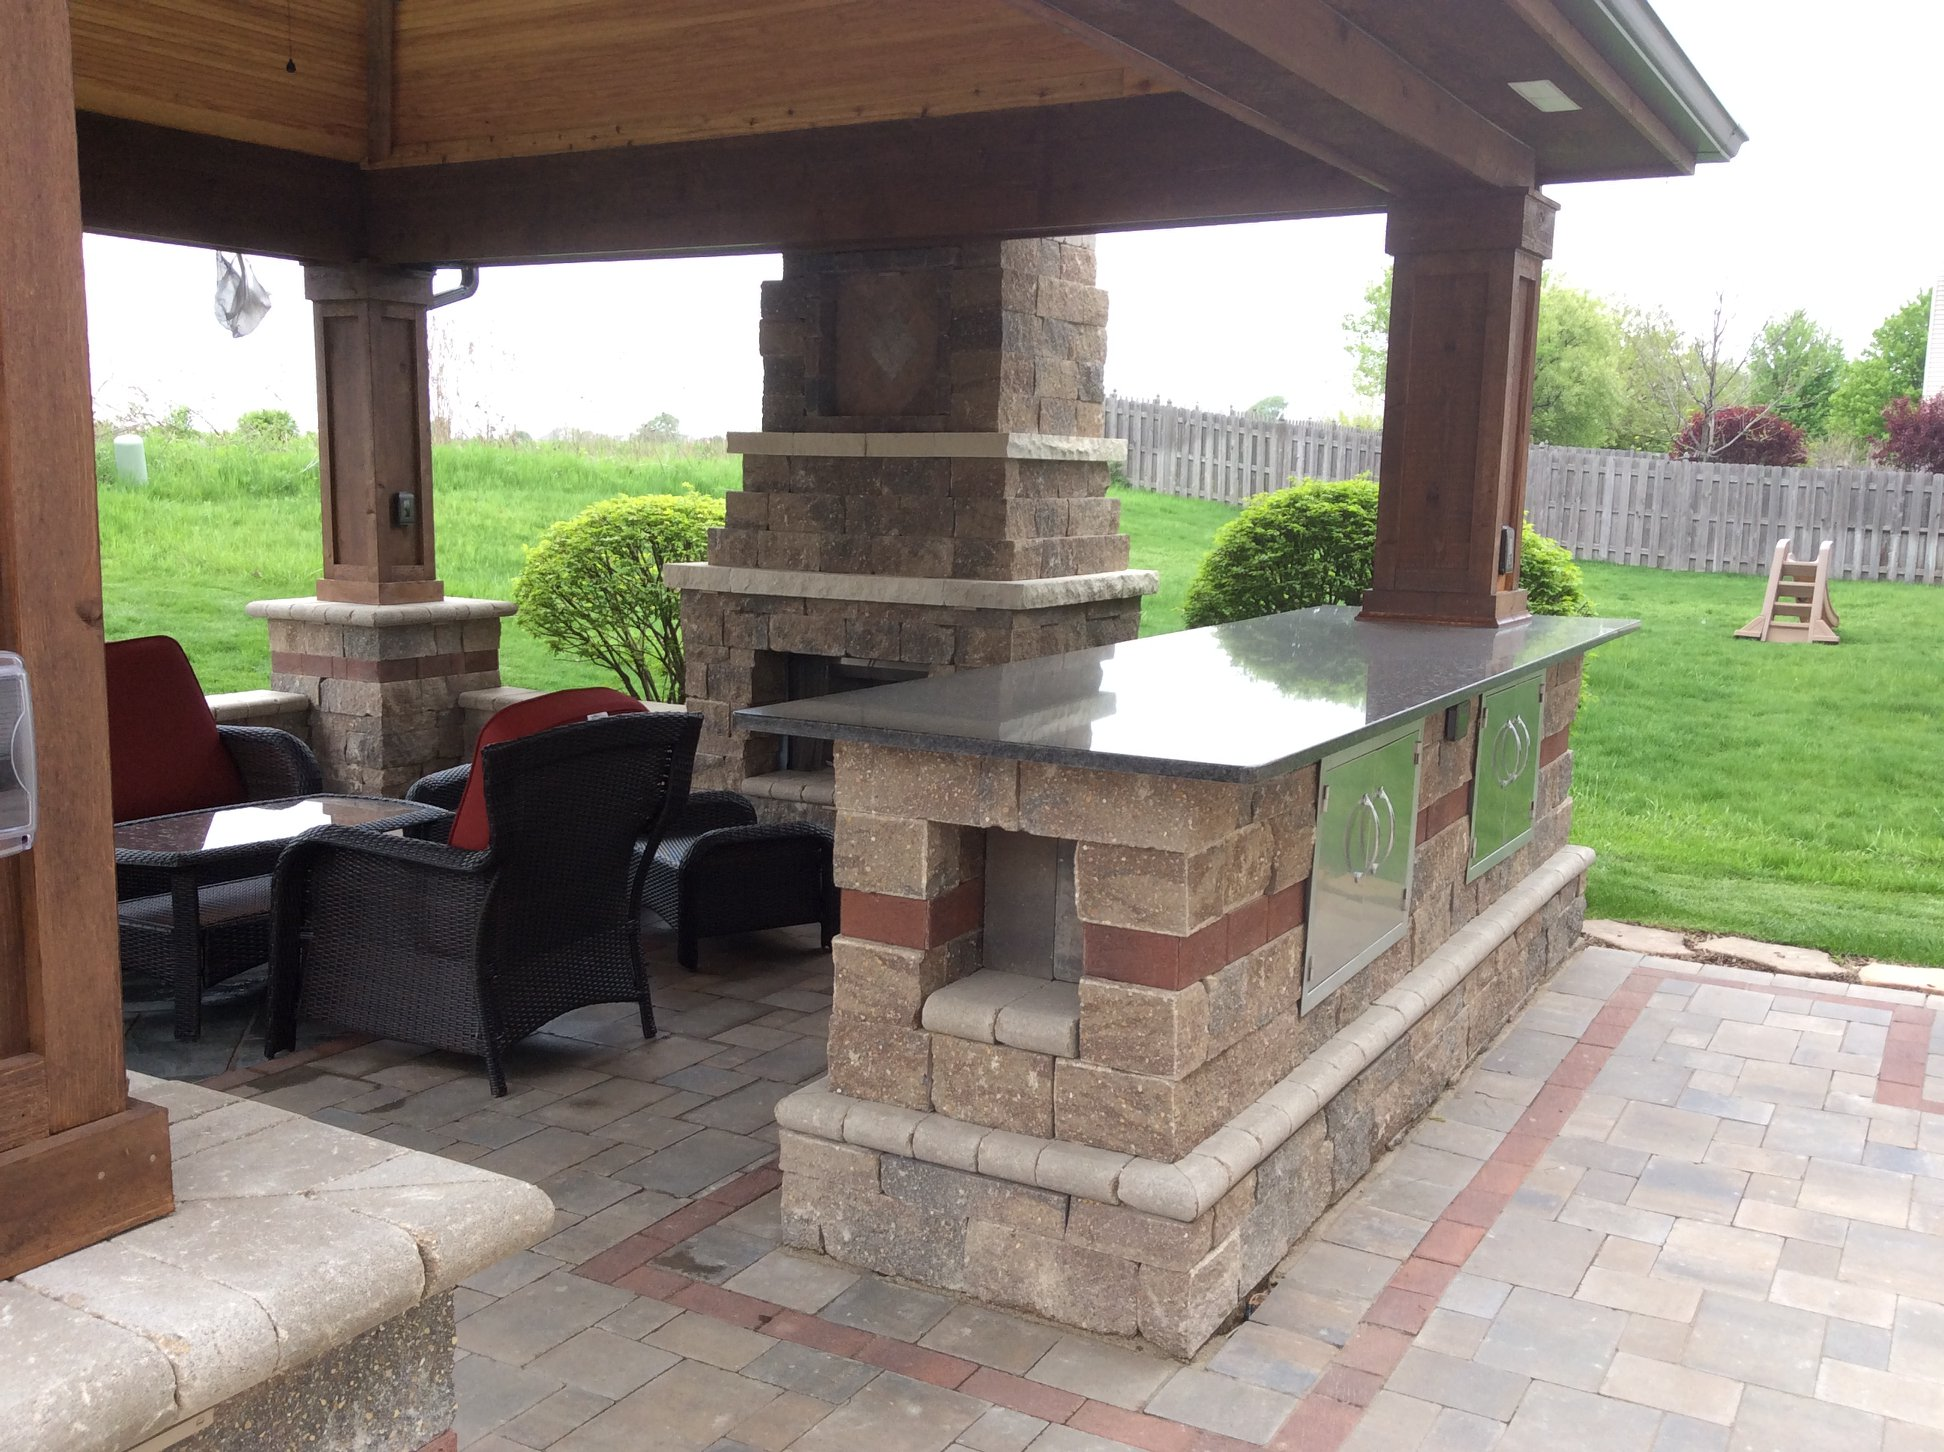 Brick paving patio that includes outdoor kitchen and outdoor fireplace in Oswego, IL